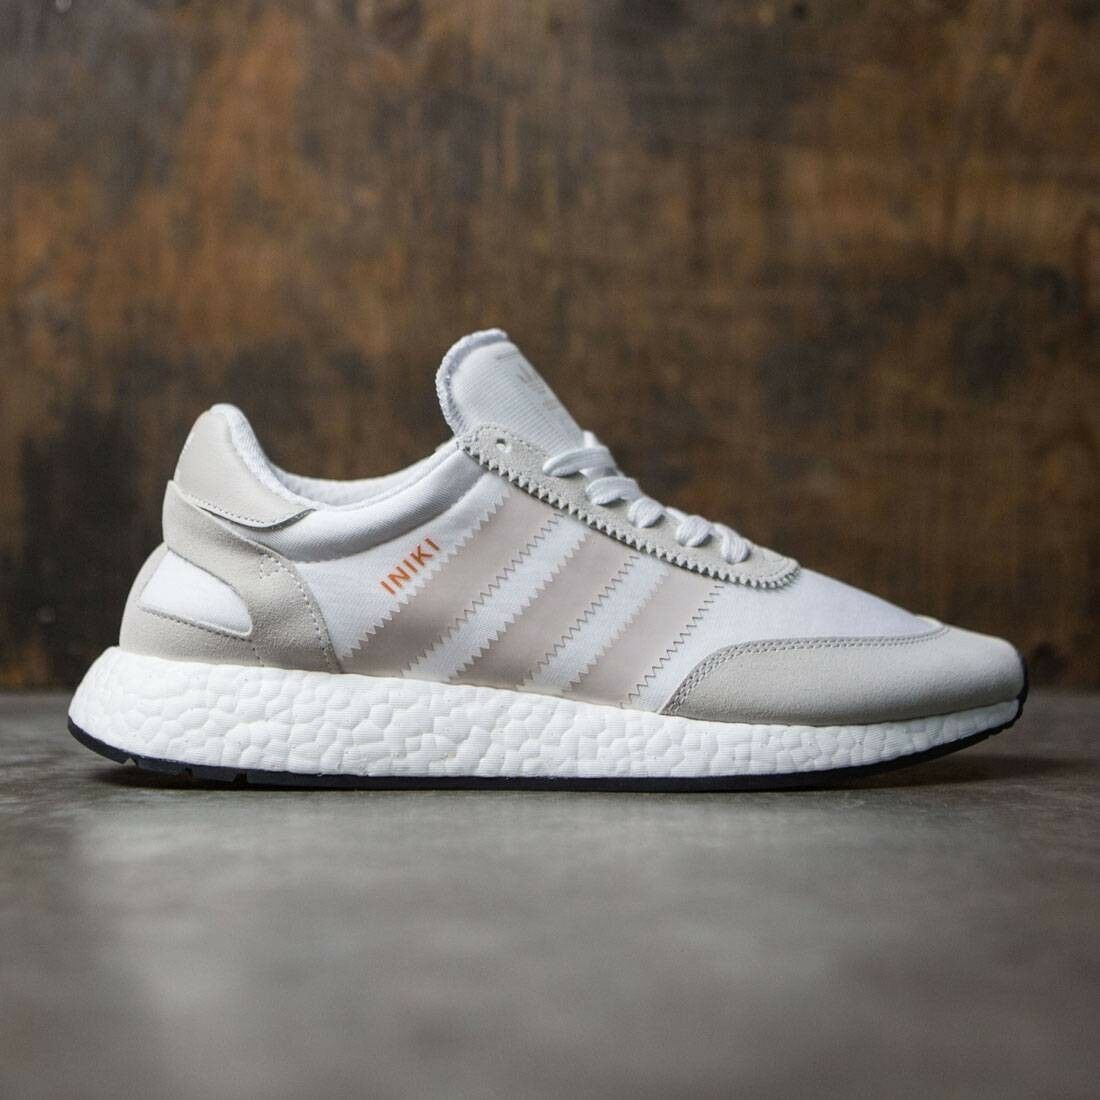 Adidas Ultra Boost Iniki Runner Pearl Grey Size 9. BY9731 Yeezy NMD Pk